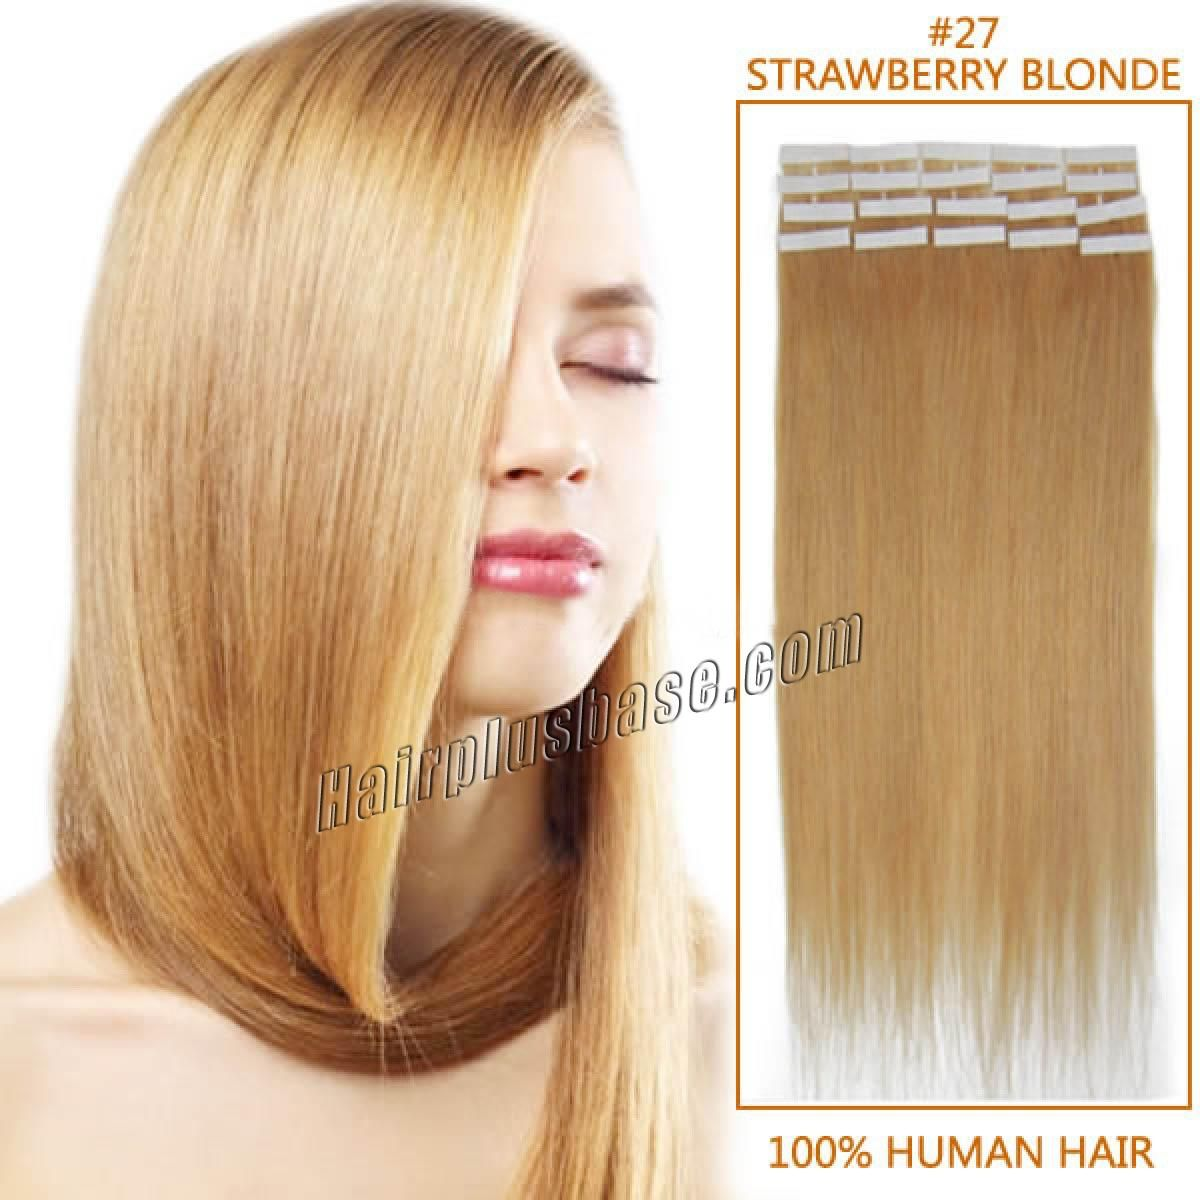 22 Inch 27 Strawberry Blonde Tape In Human Hair Extensions 20pcs